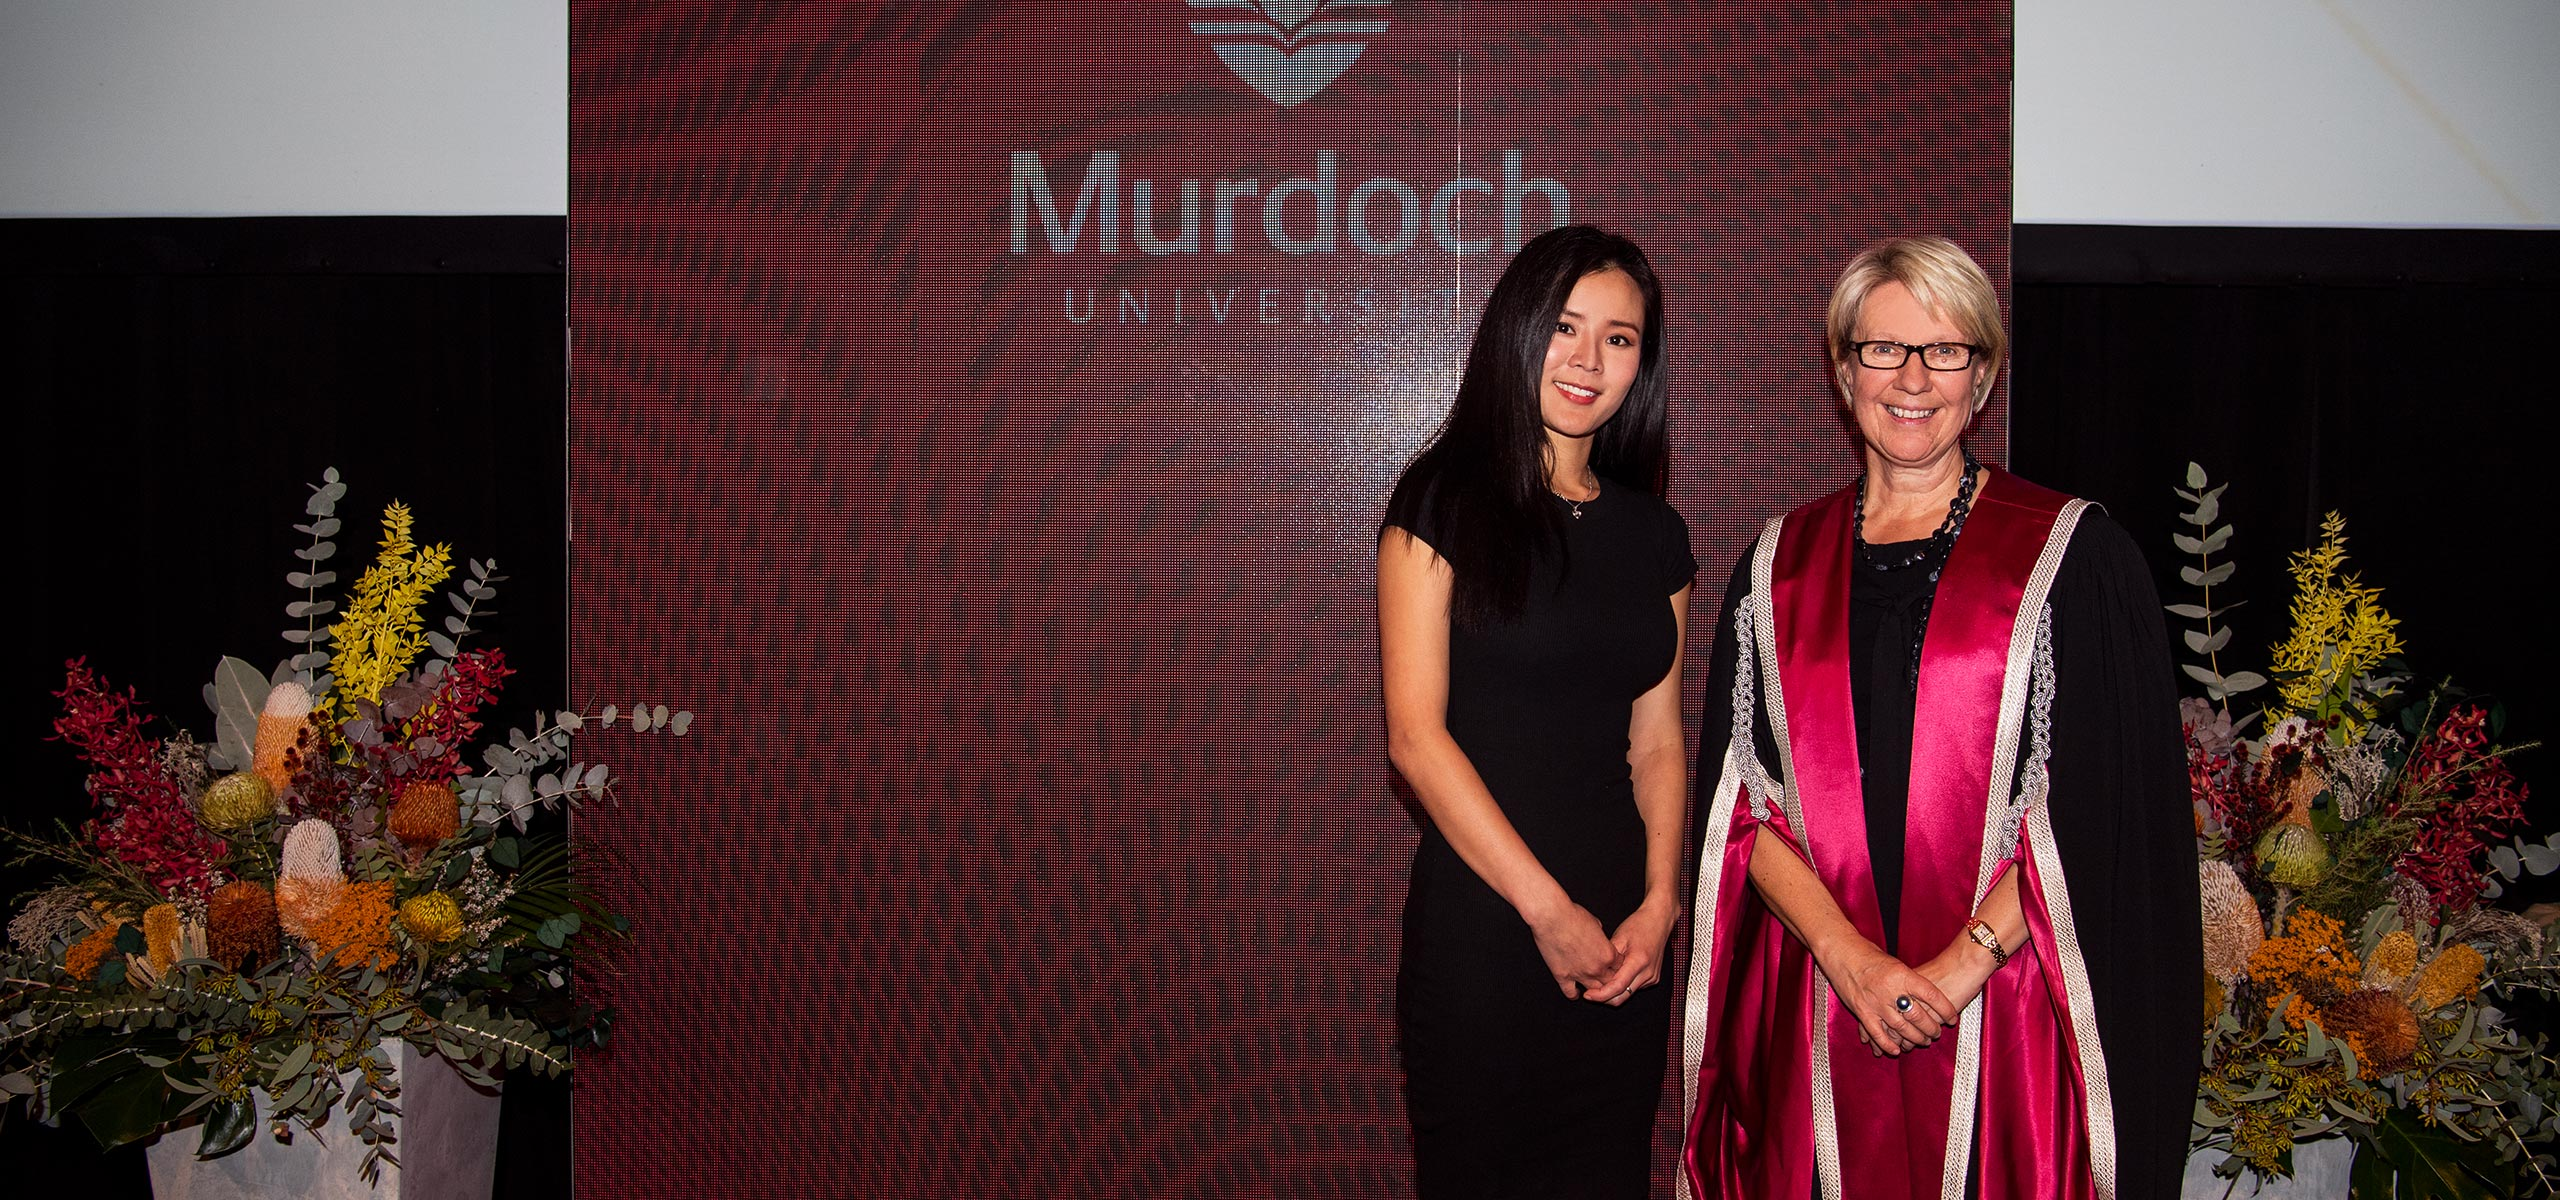 Academic excellence award recipient Wenna Lee with Vice Chancellor